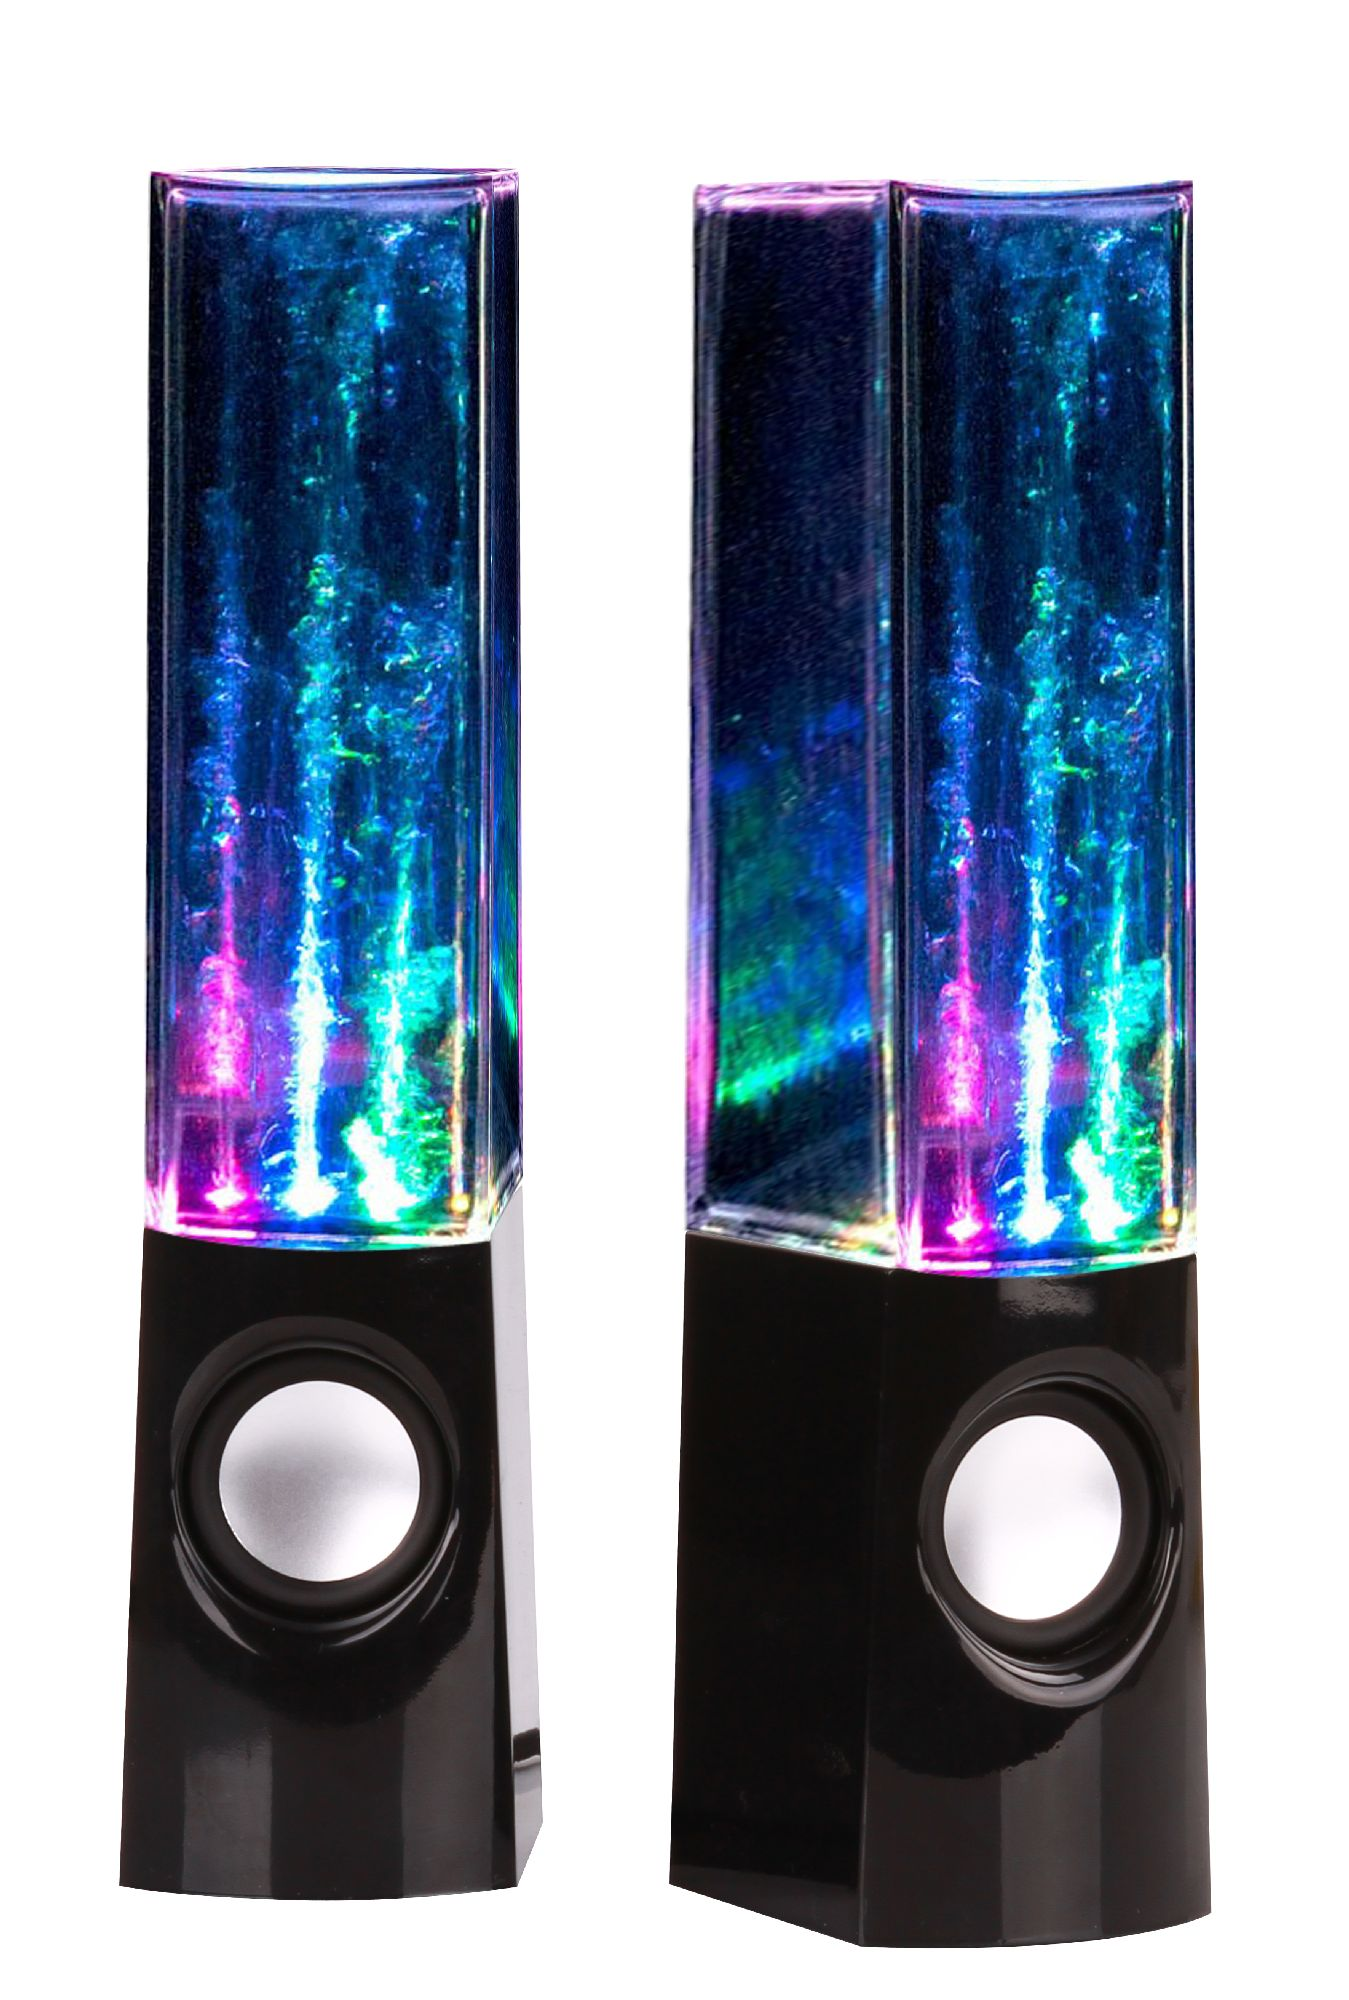 Bolan Plug & Play Multi-Color Illuminated Dancing Water Speaker Light Show Water Fountain Speakers LED Speakers 3.5mm Audio Plug, 4 Colored LED Lights, Portable Speakers